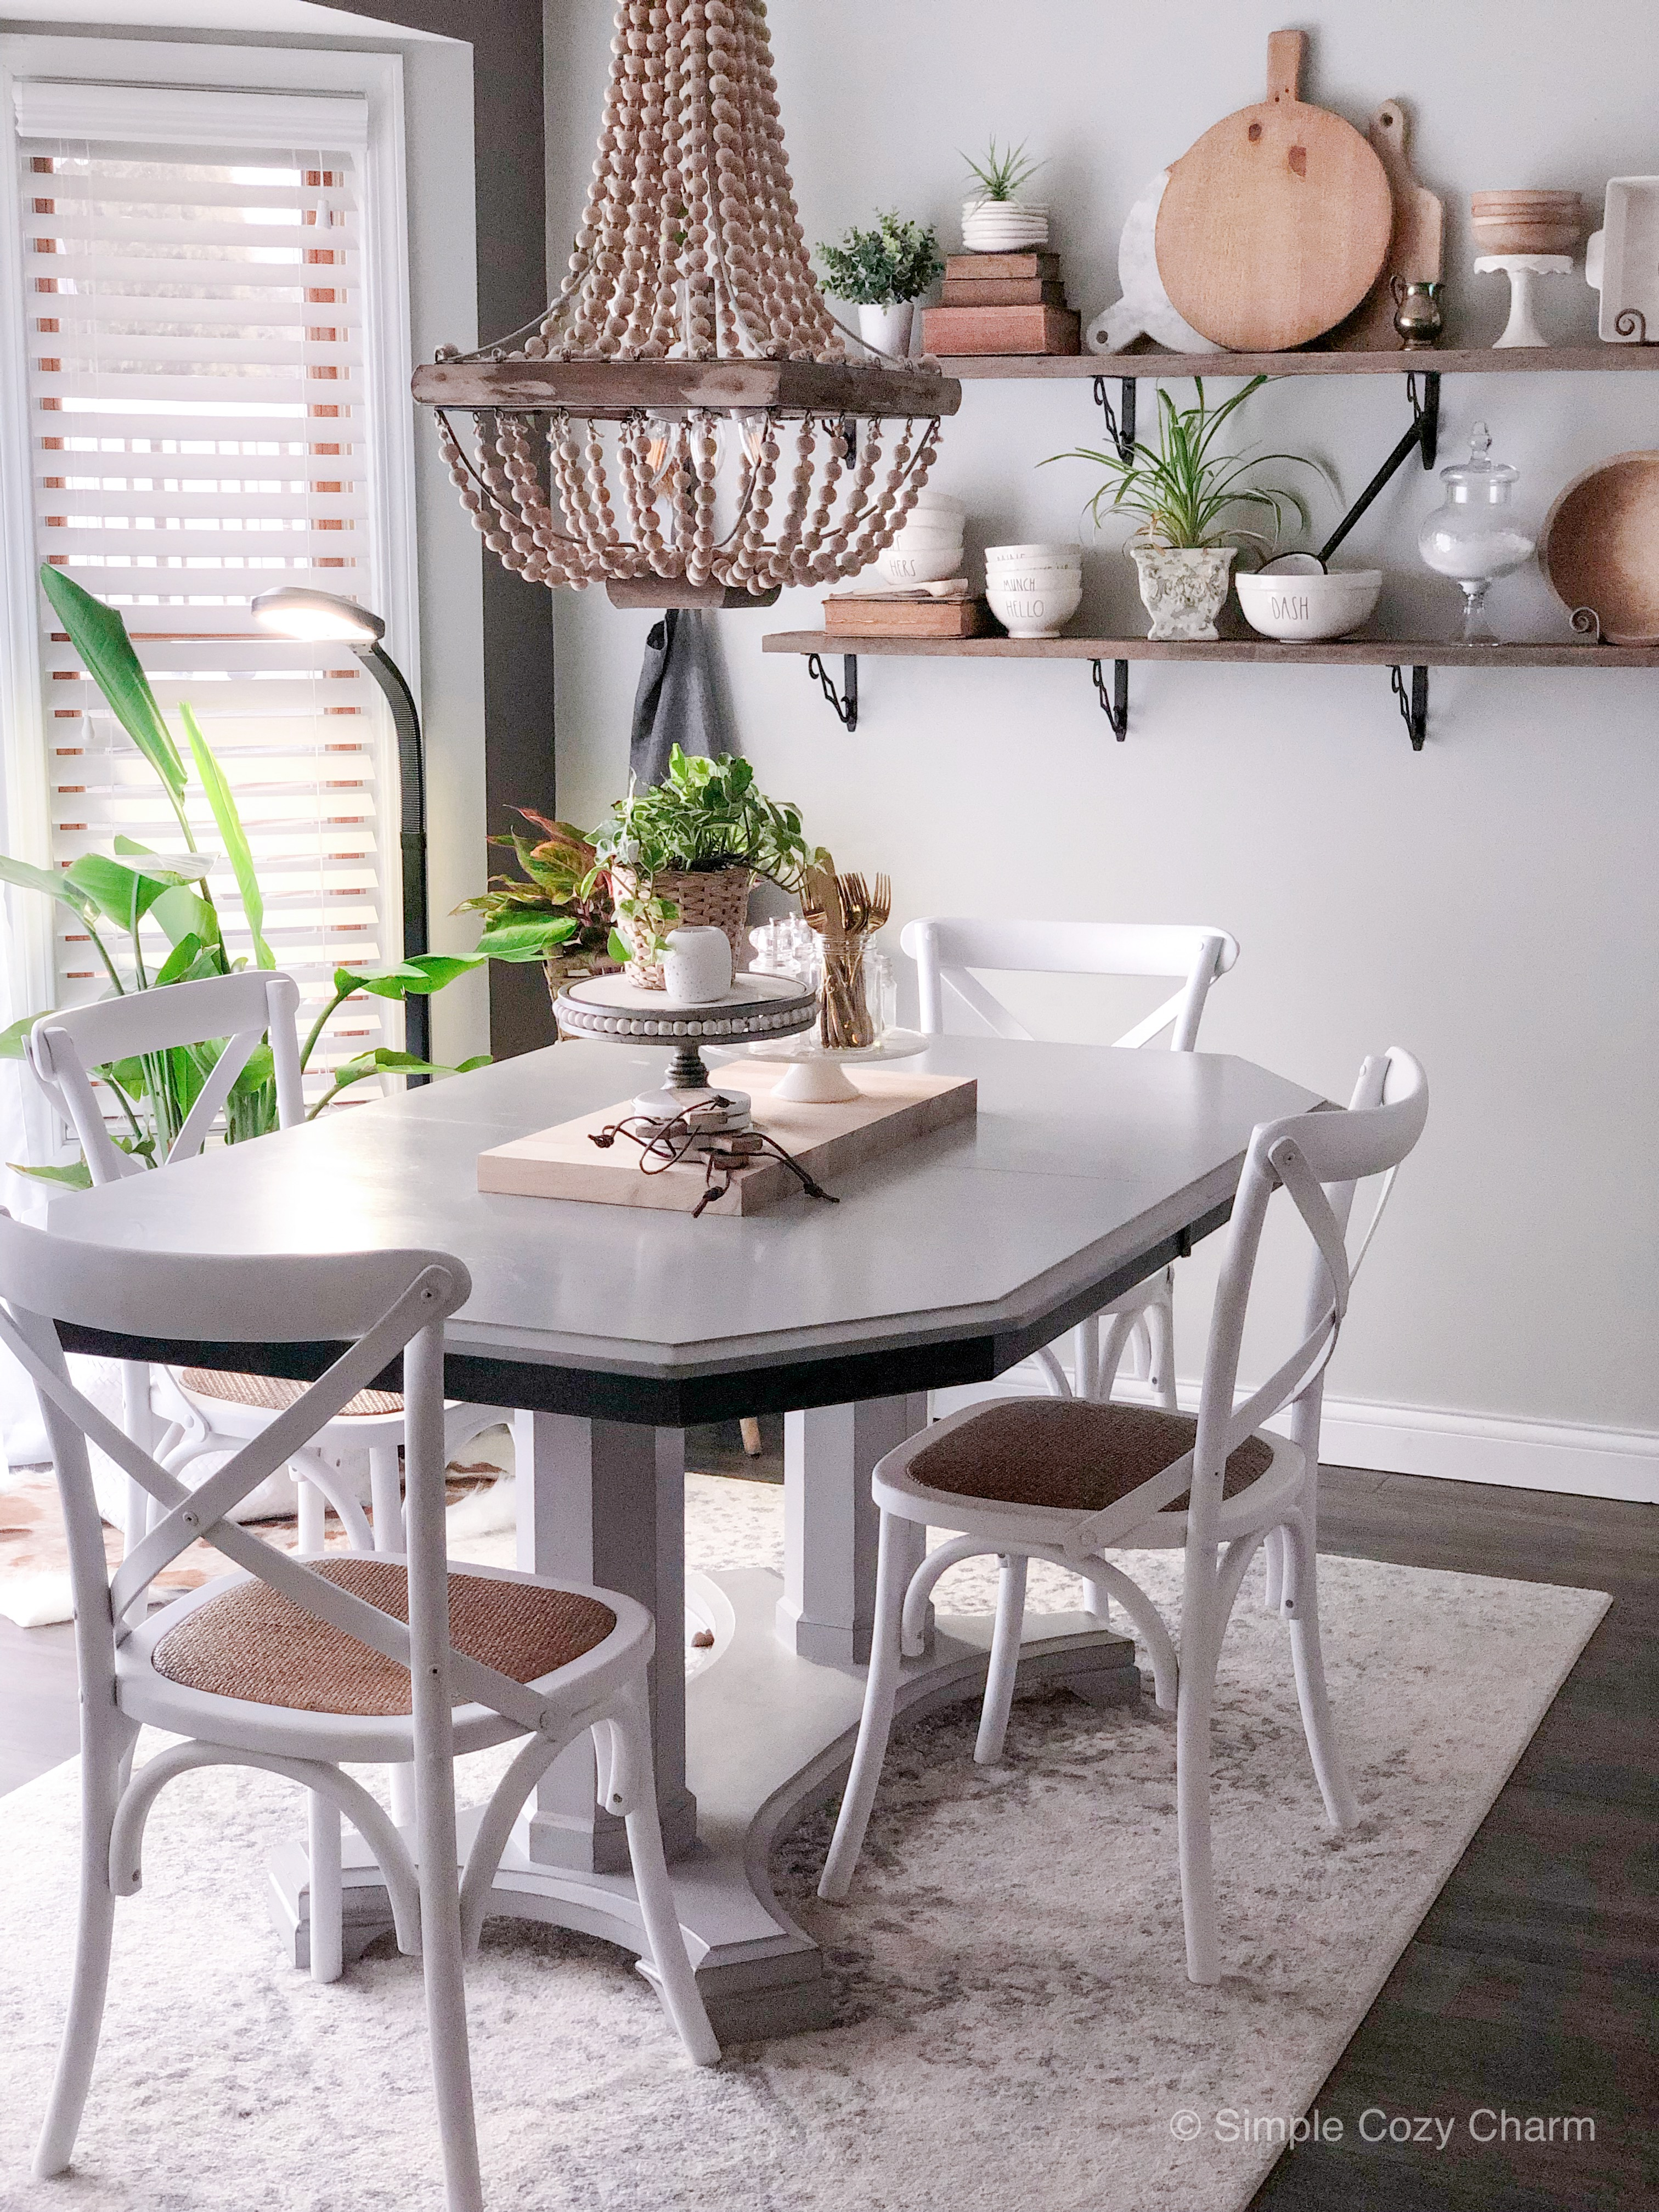 Farmhouse chairs for the breakfast nook, finally!